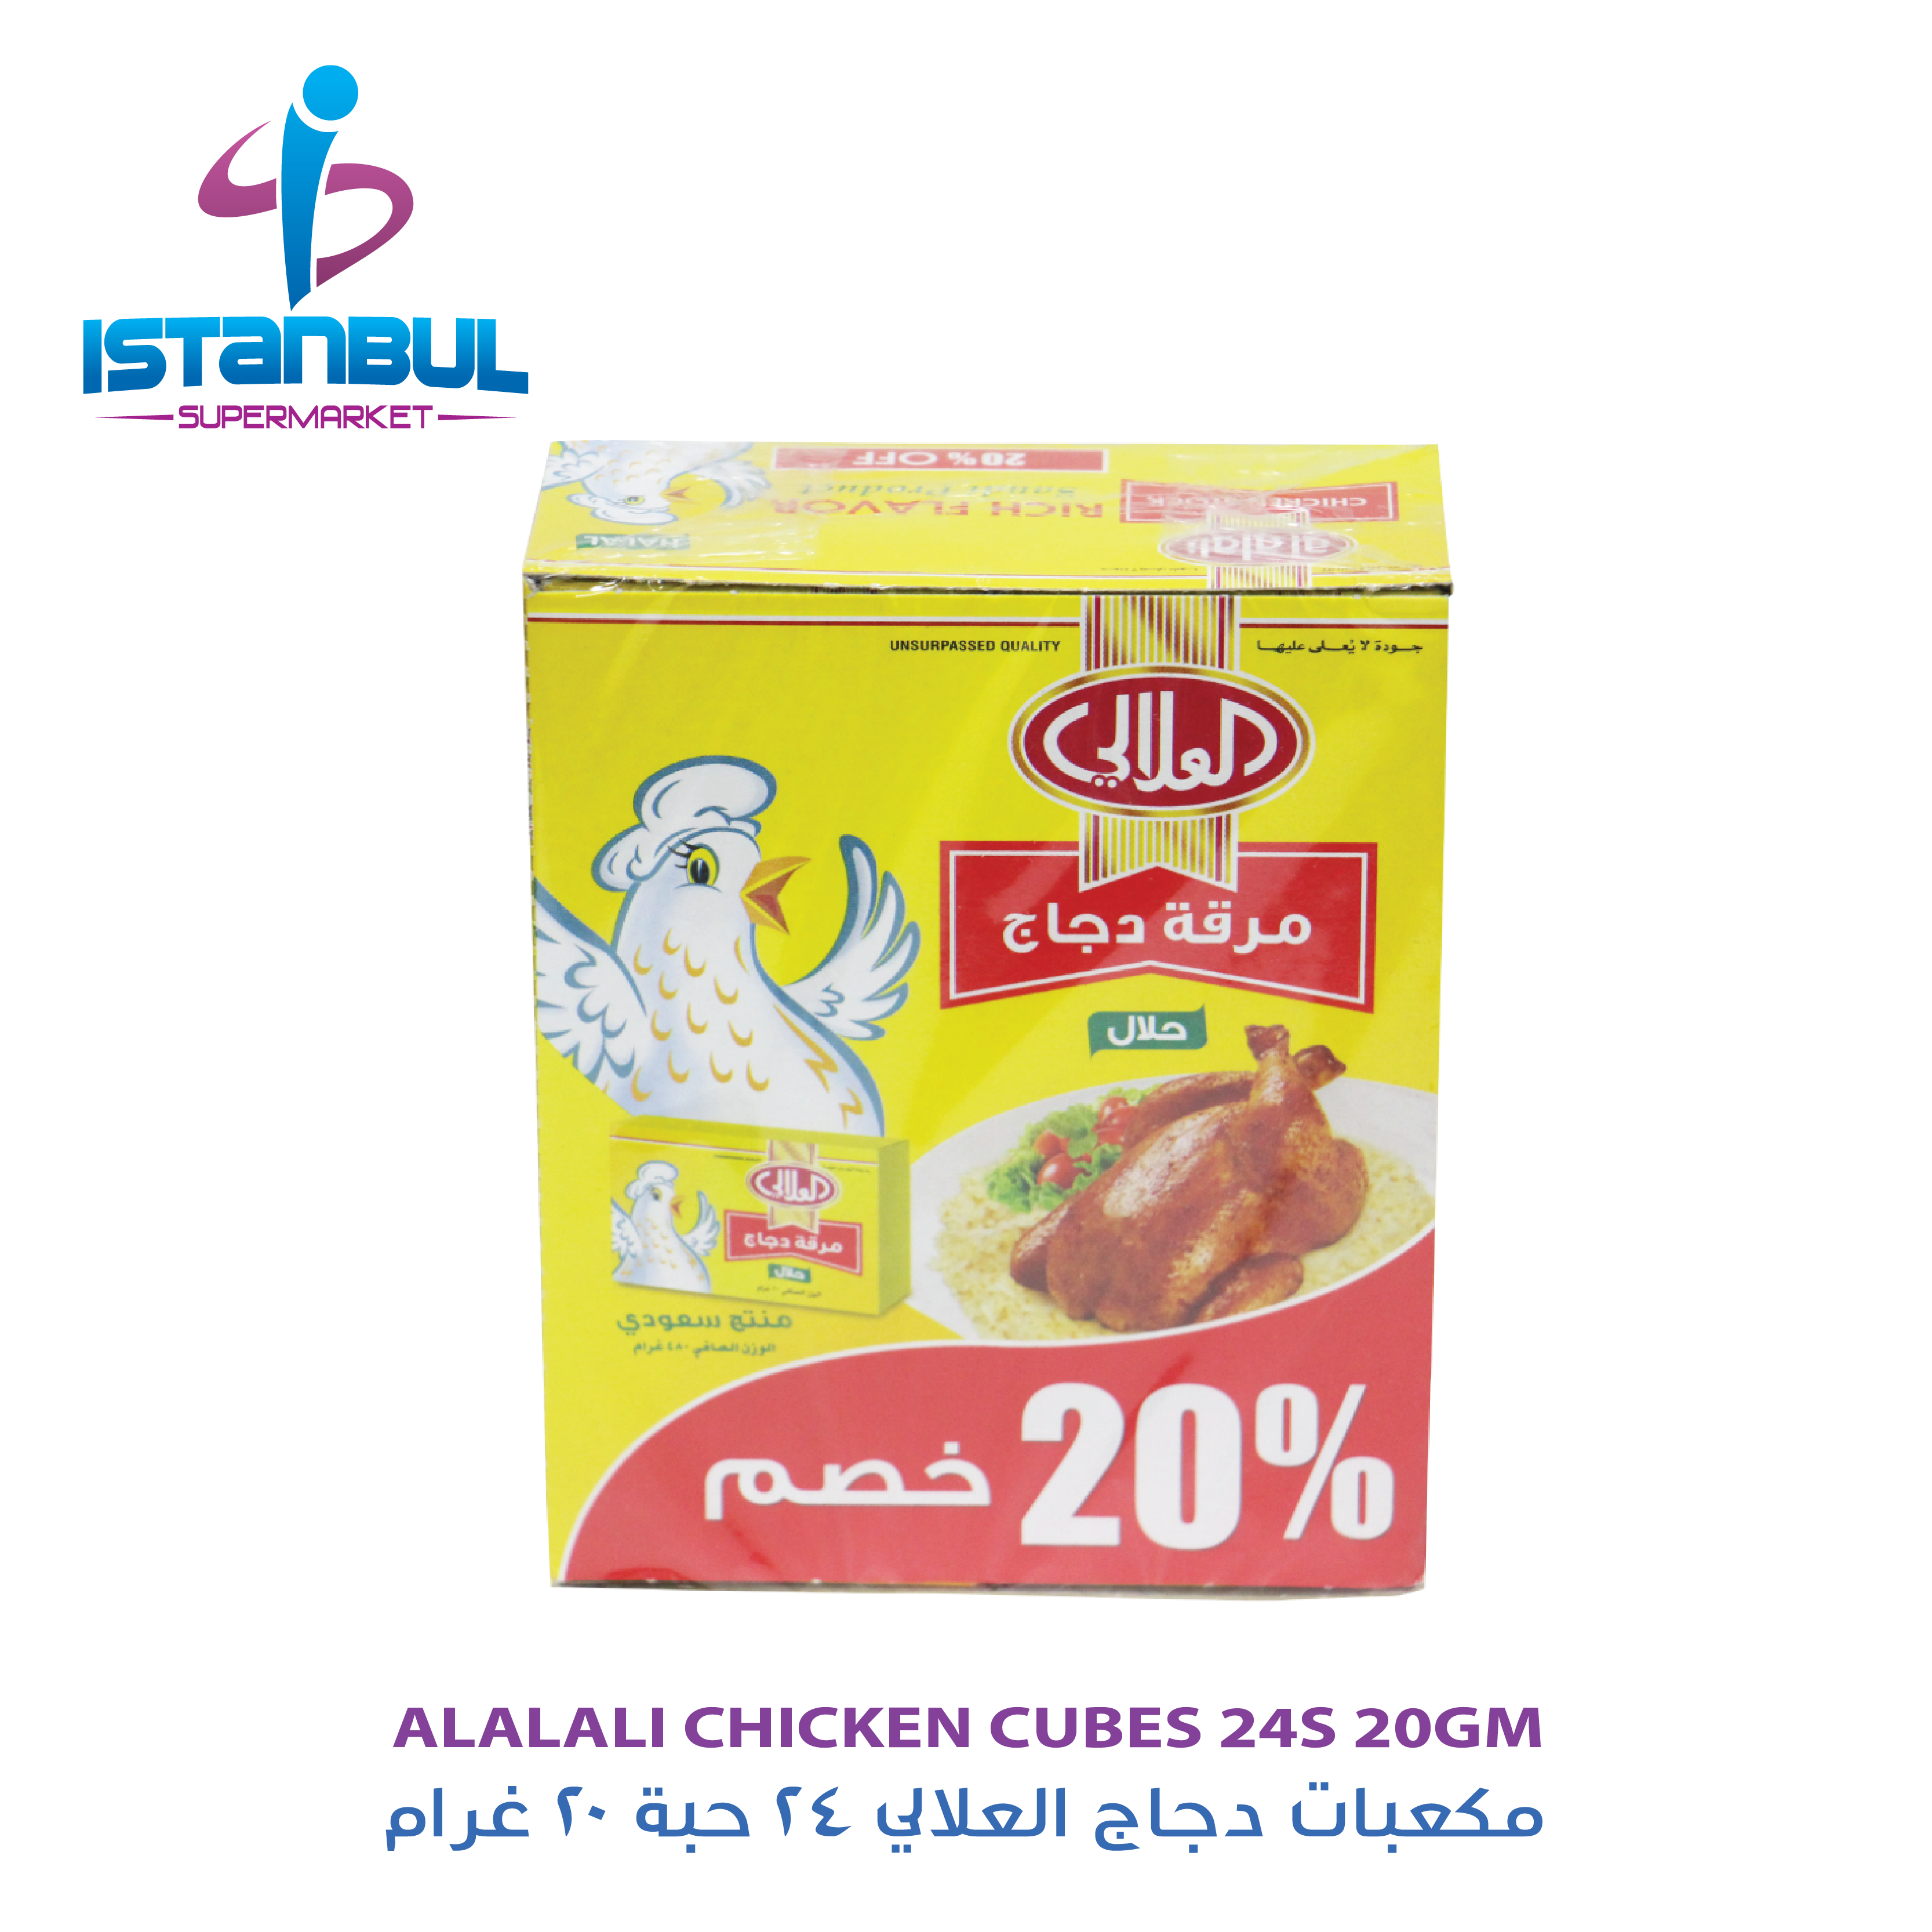 Al Alali Chicken Cubes Completes Your Cooking With Enhanced Chicken Flavors Grab A Box Now At Istanbulsupermark Cereal Pops Pops Cereal Box Supermarket